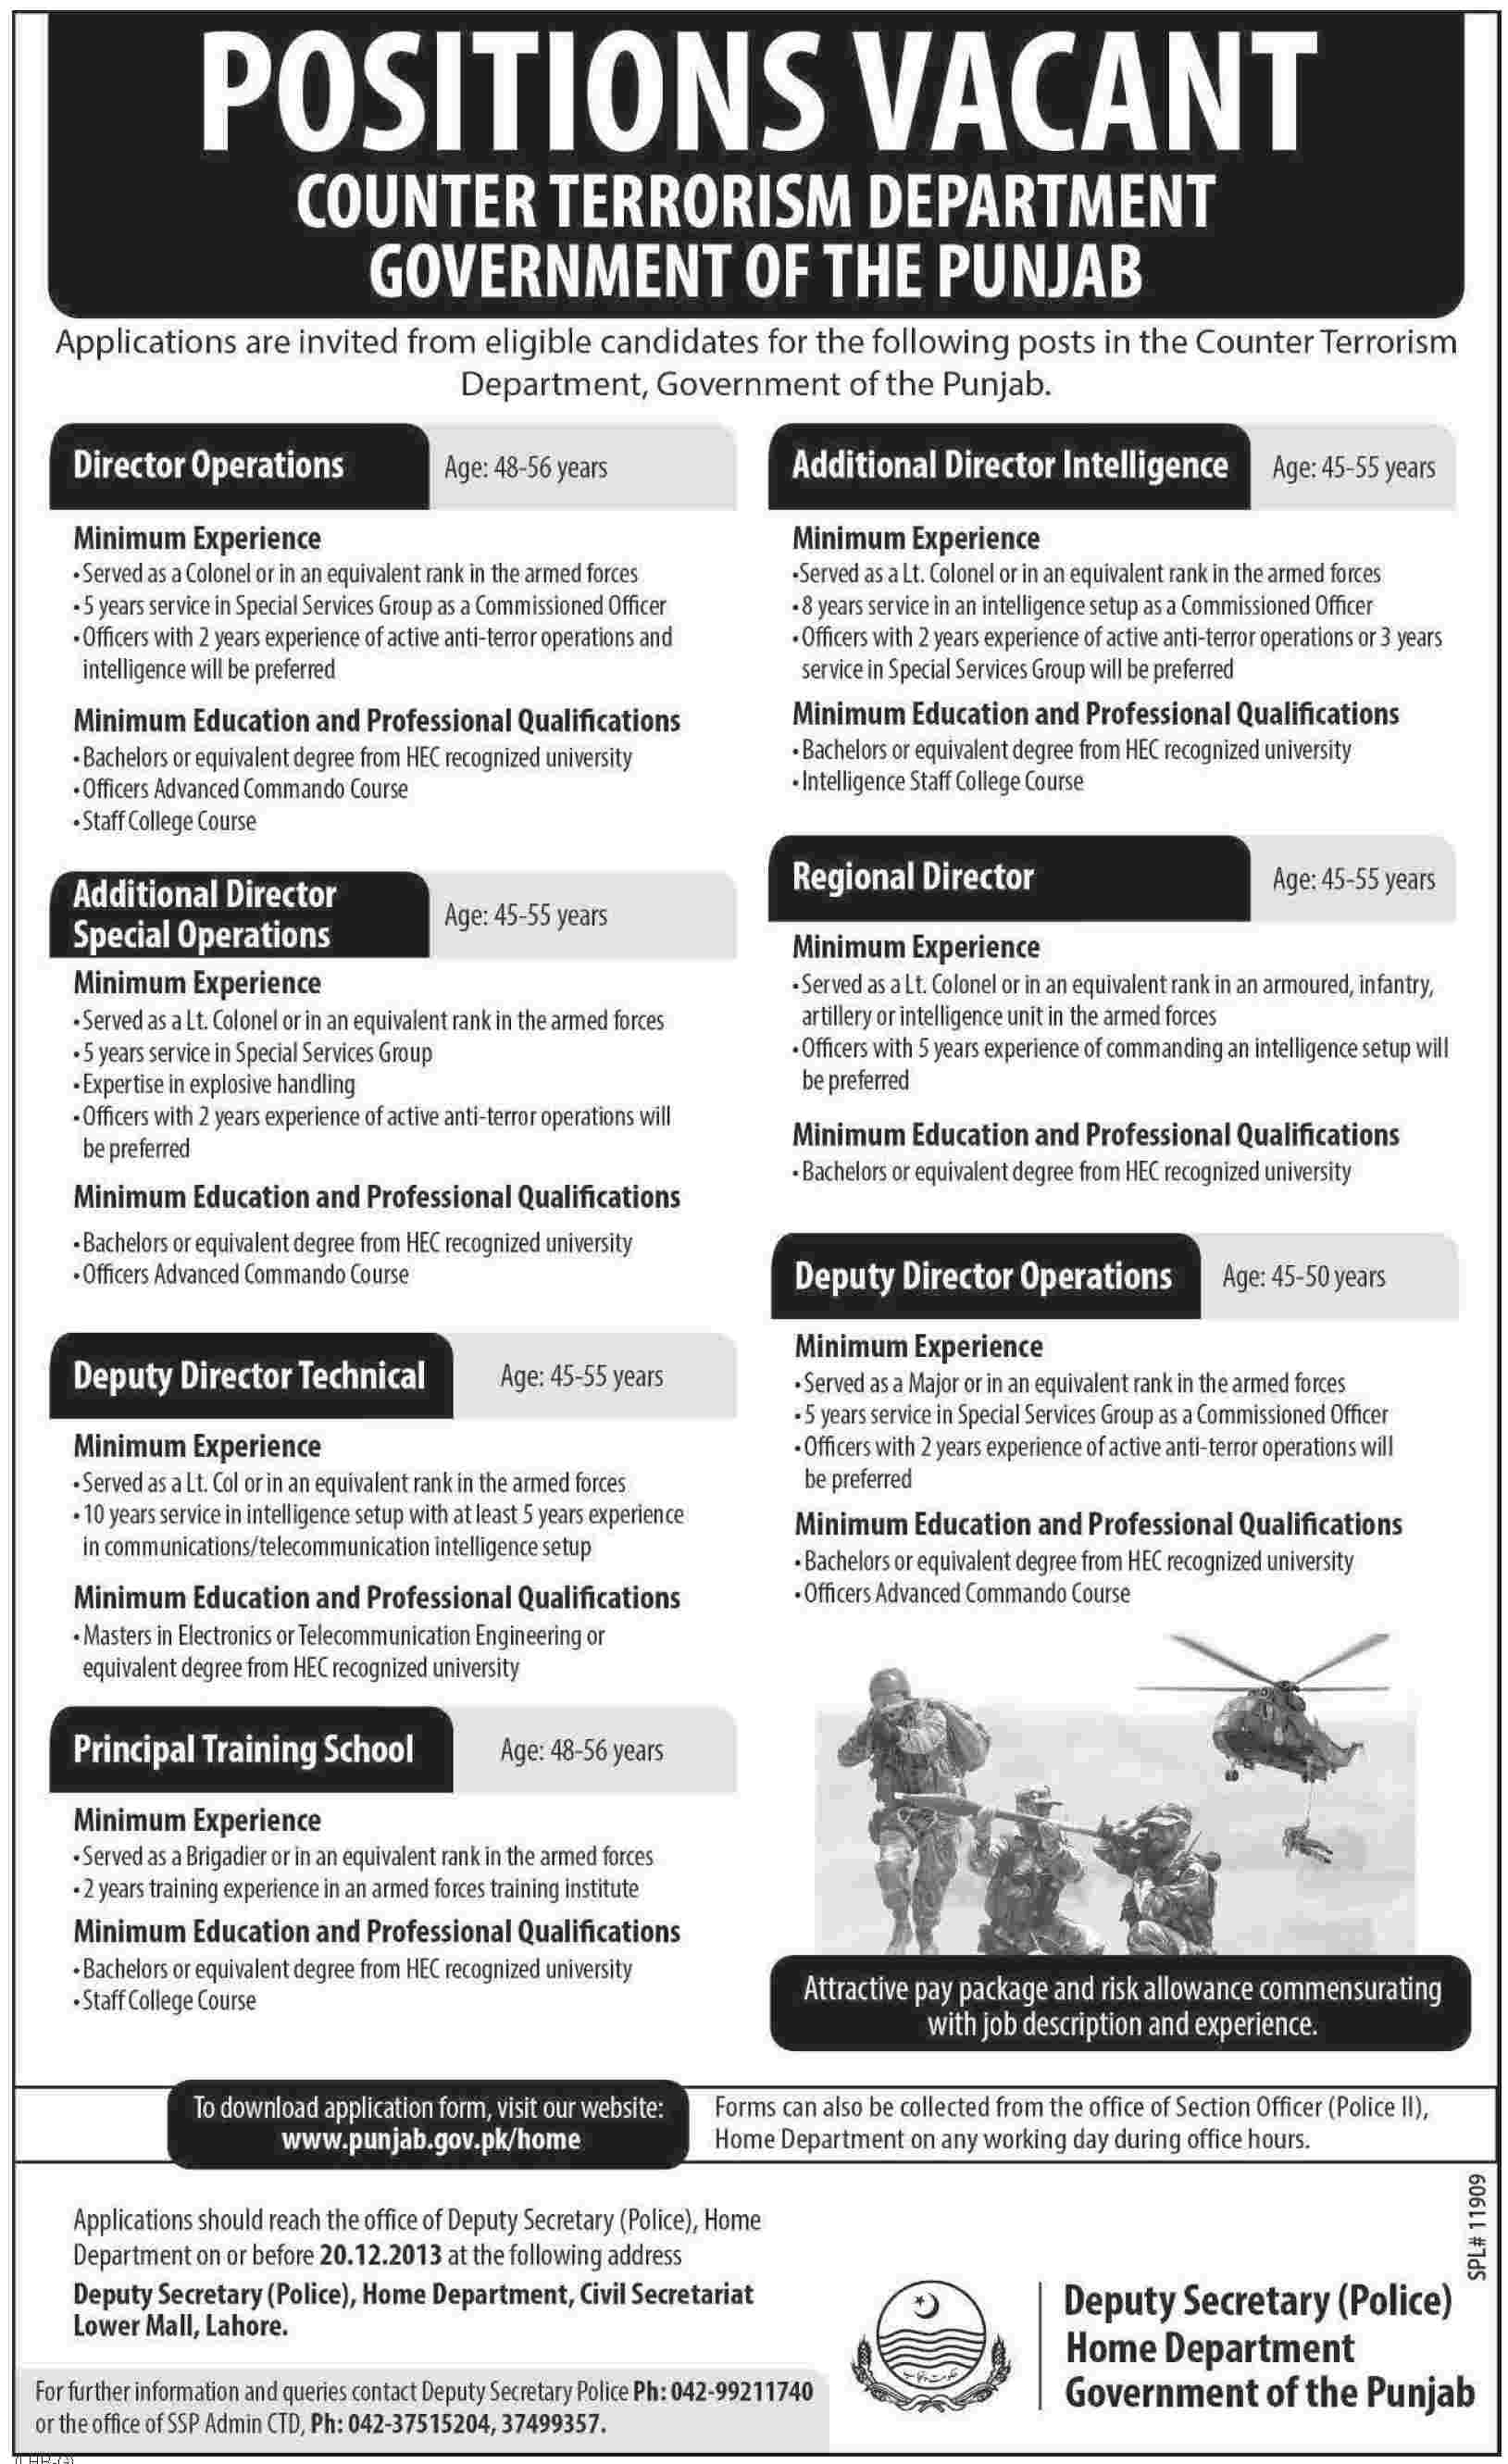 jobs at counter terrorism department govt of punjab Jobs at Counter terrorism Department Govt of Punjab